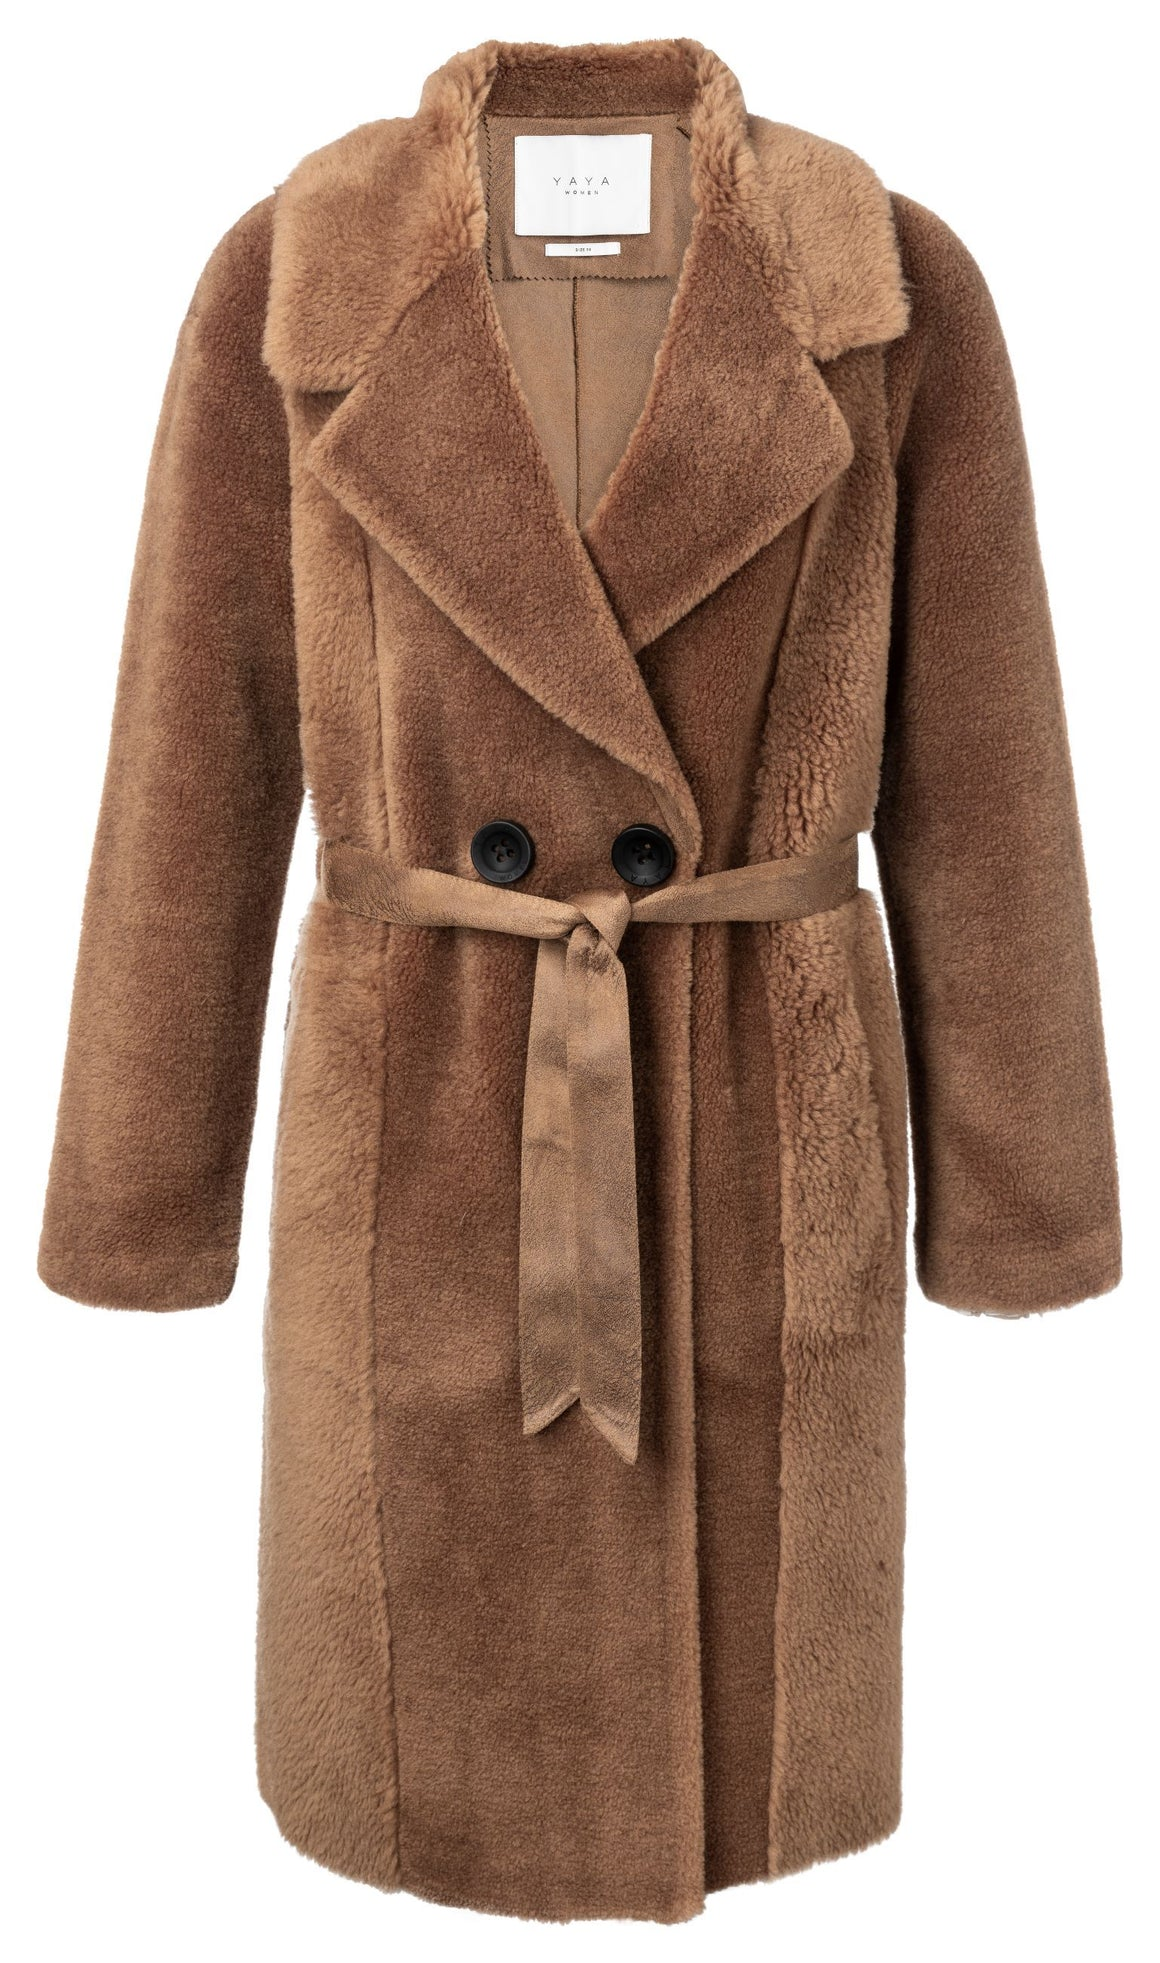 Brown YaYa Wool Lammy Coat Coat BouChic | Homeware, Fashion, Gifts, Accessories